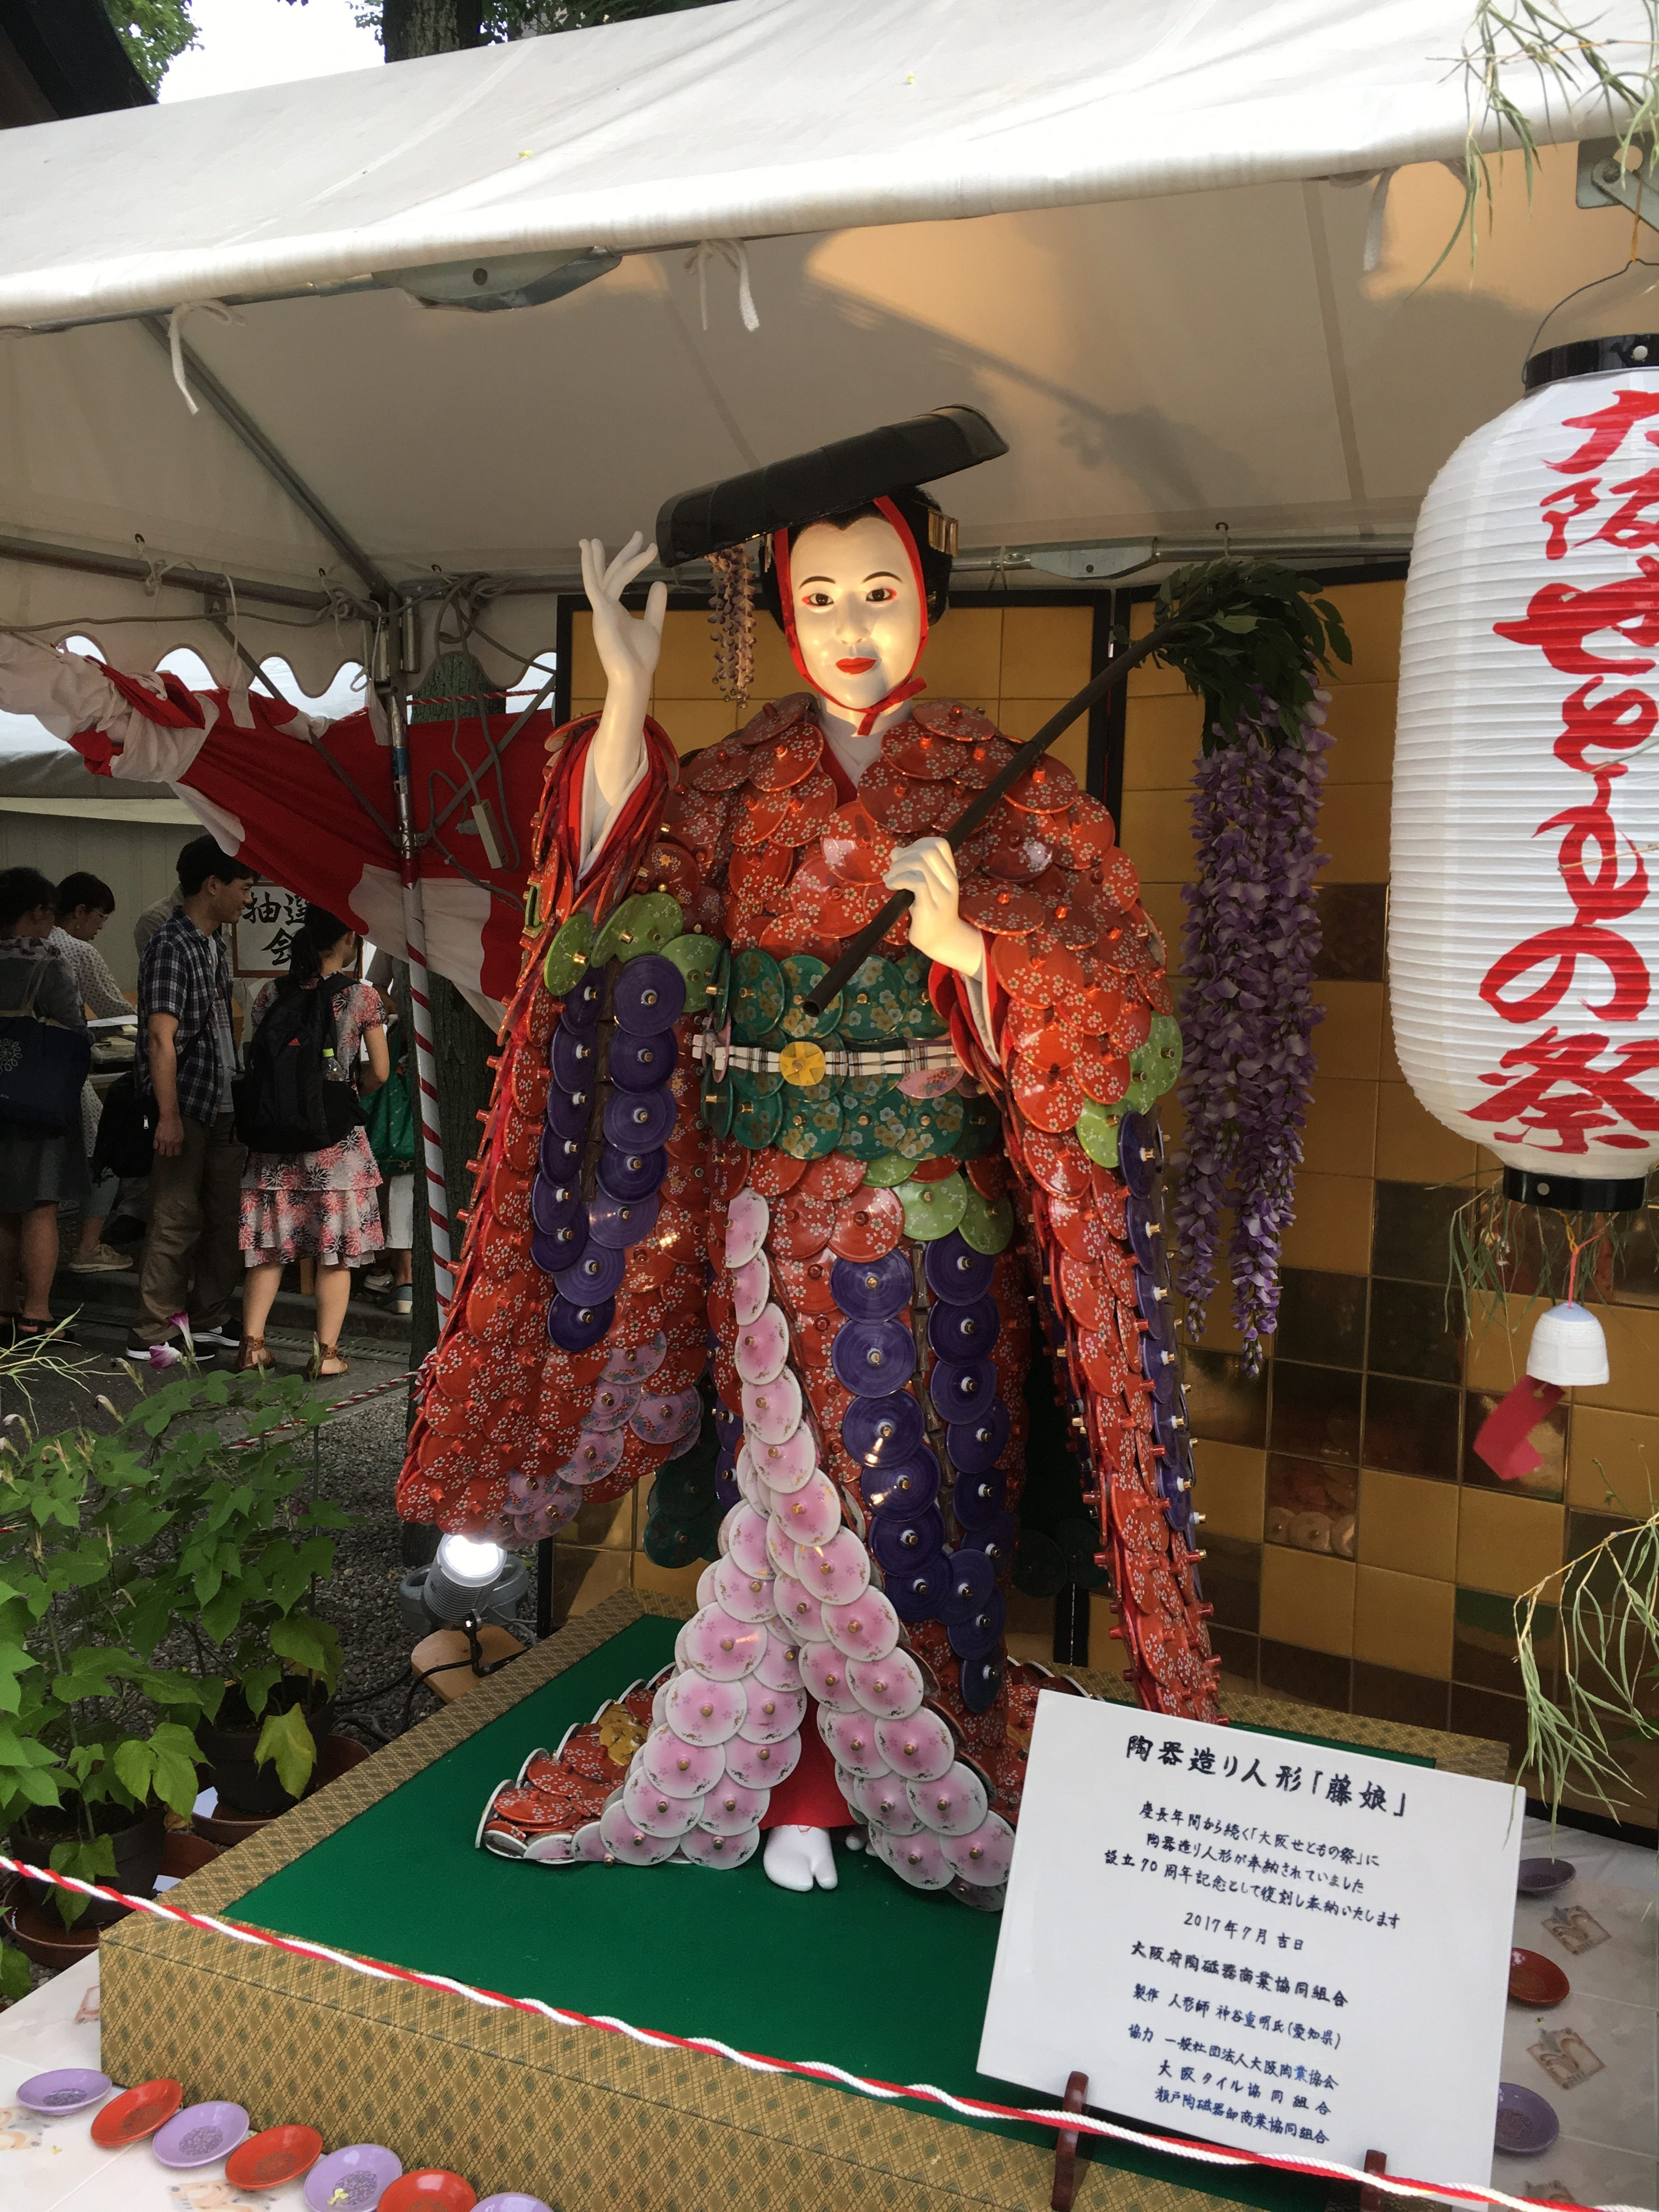 life-size porcelain doll of a japanese lady in traditional clothes with wisteria branch